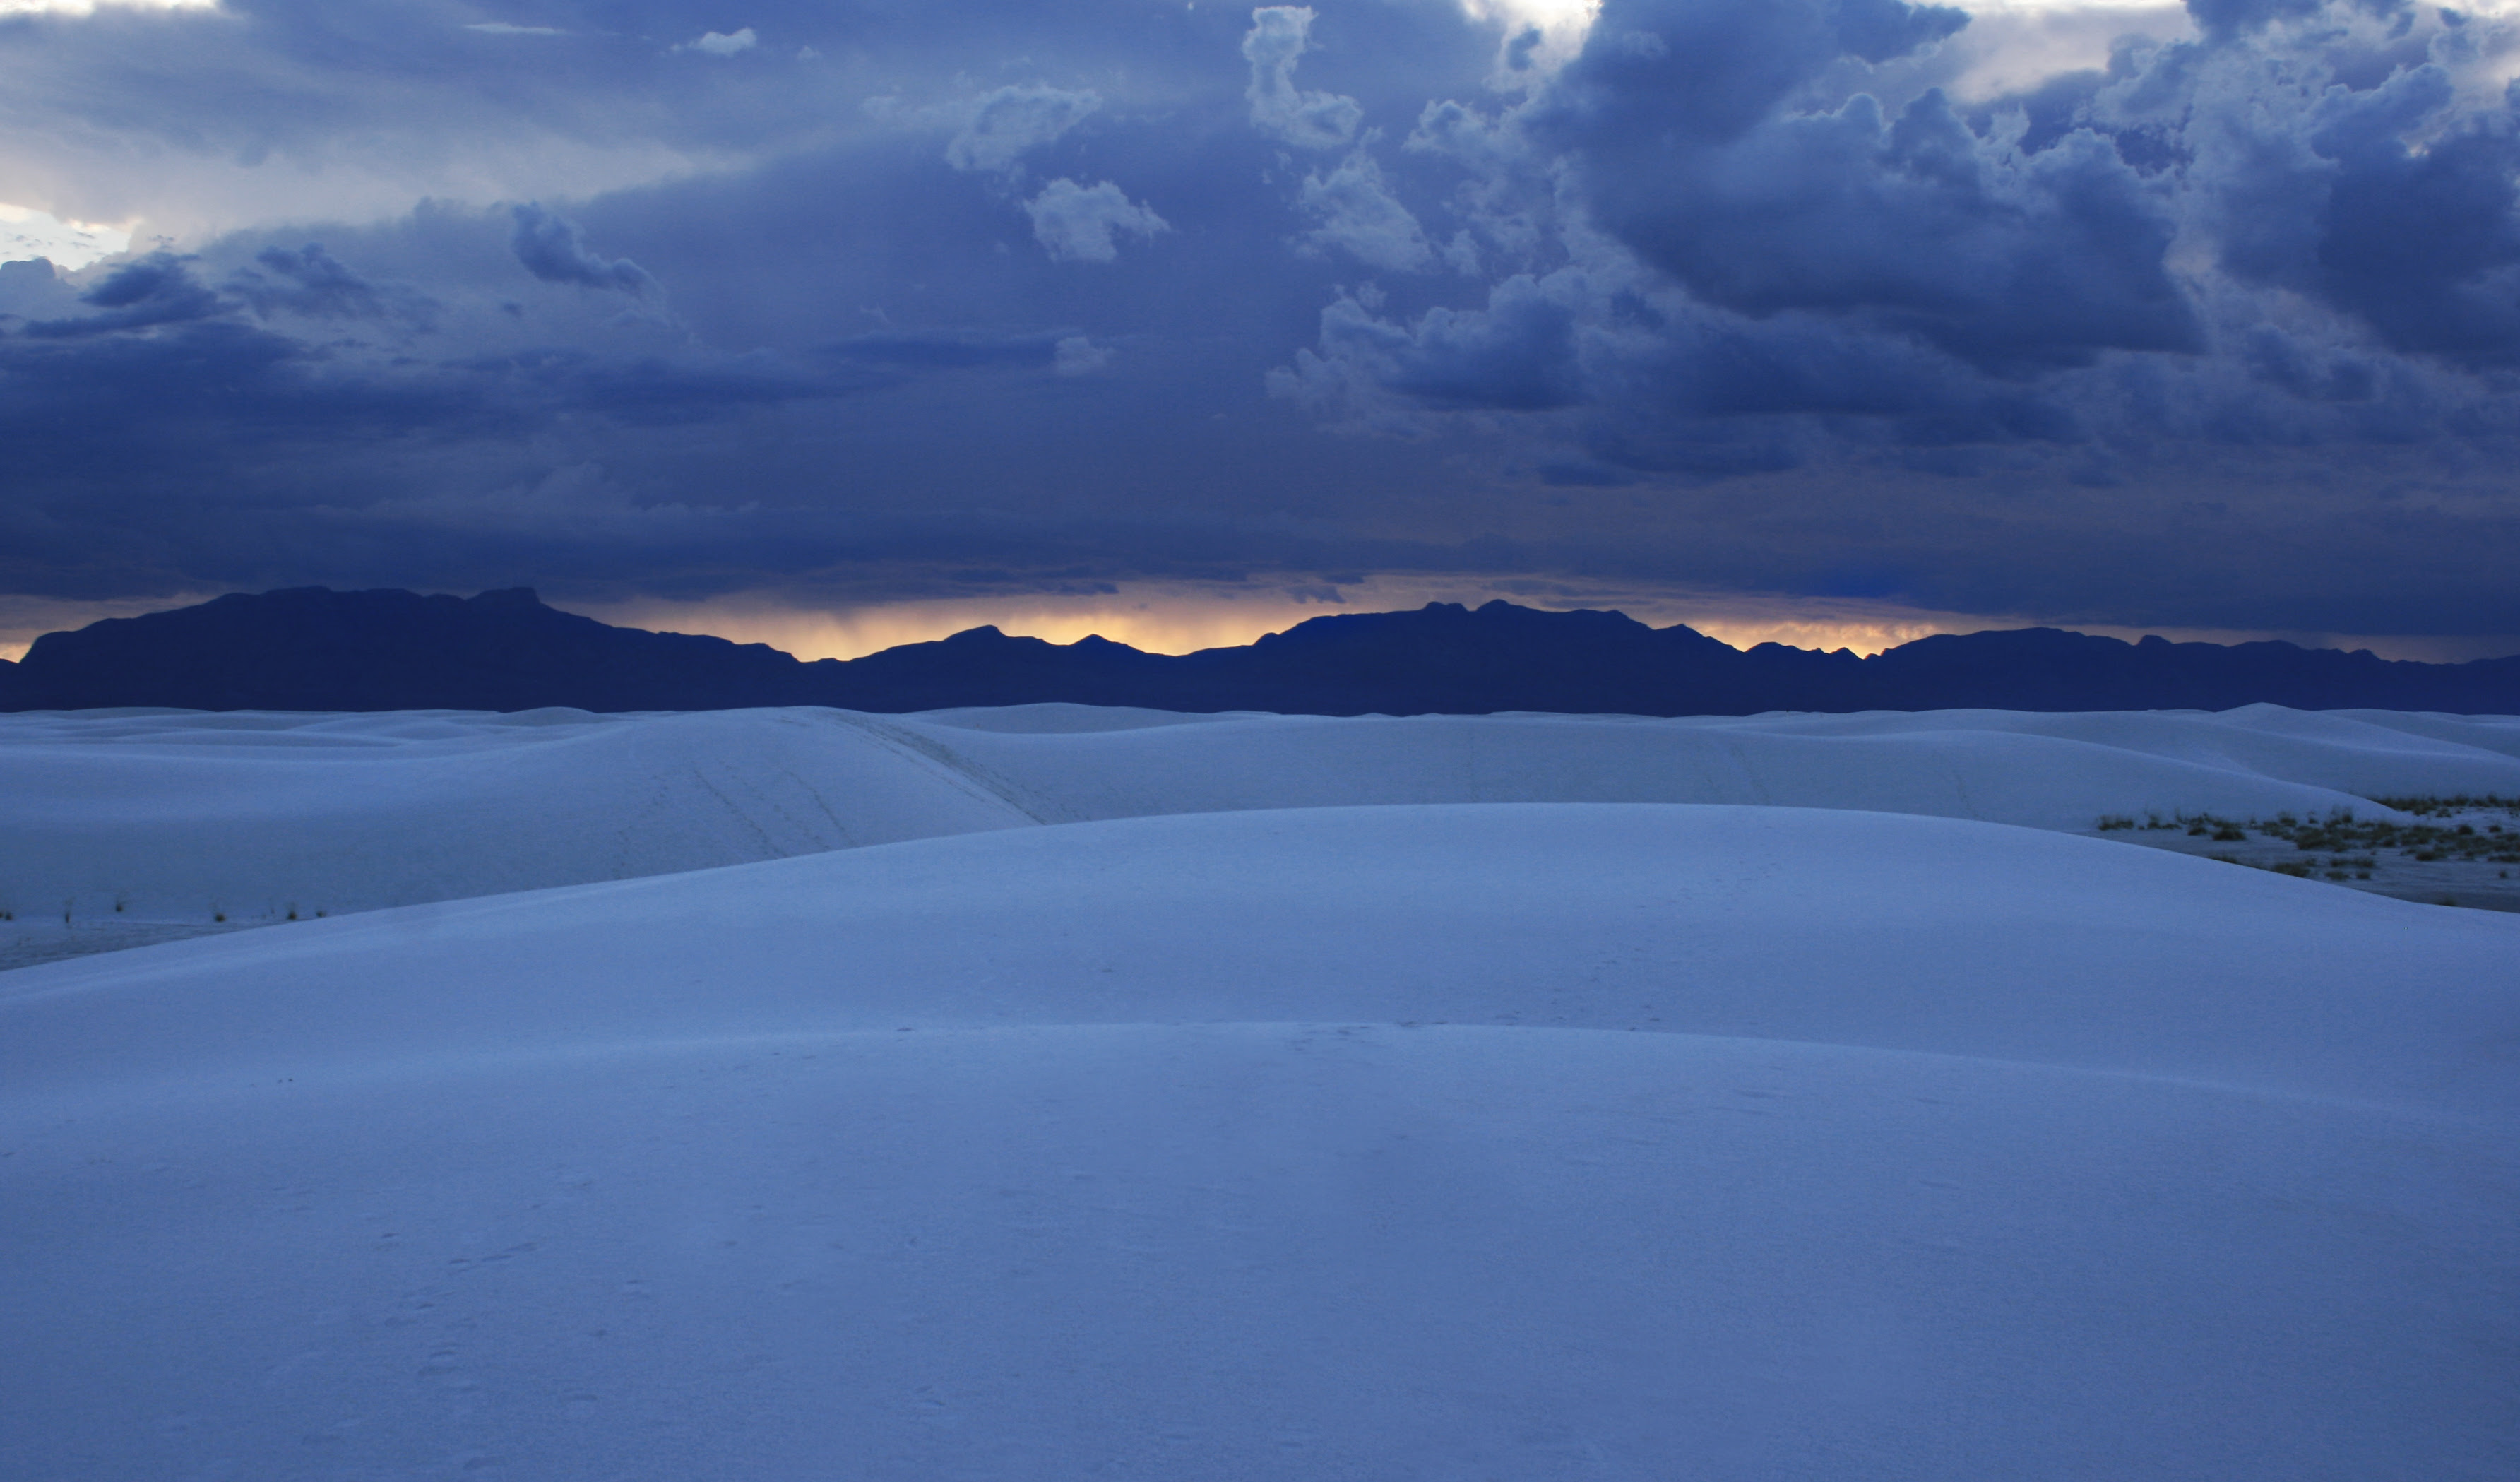 http://upload.wikimedia.org/wikipedia/commons/2/2c/White_sands_sunset.JPG